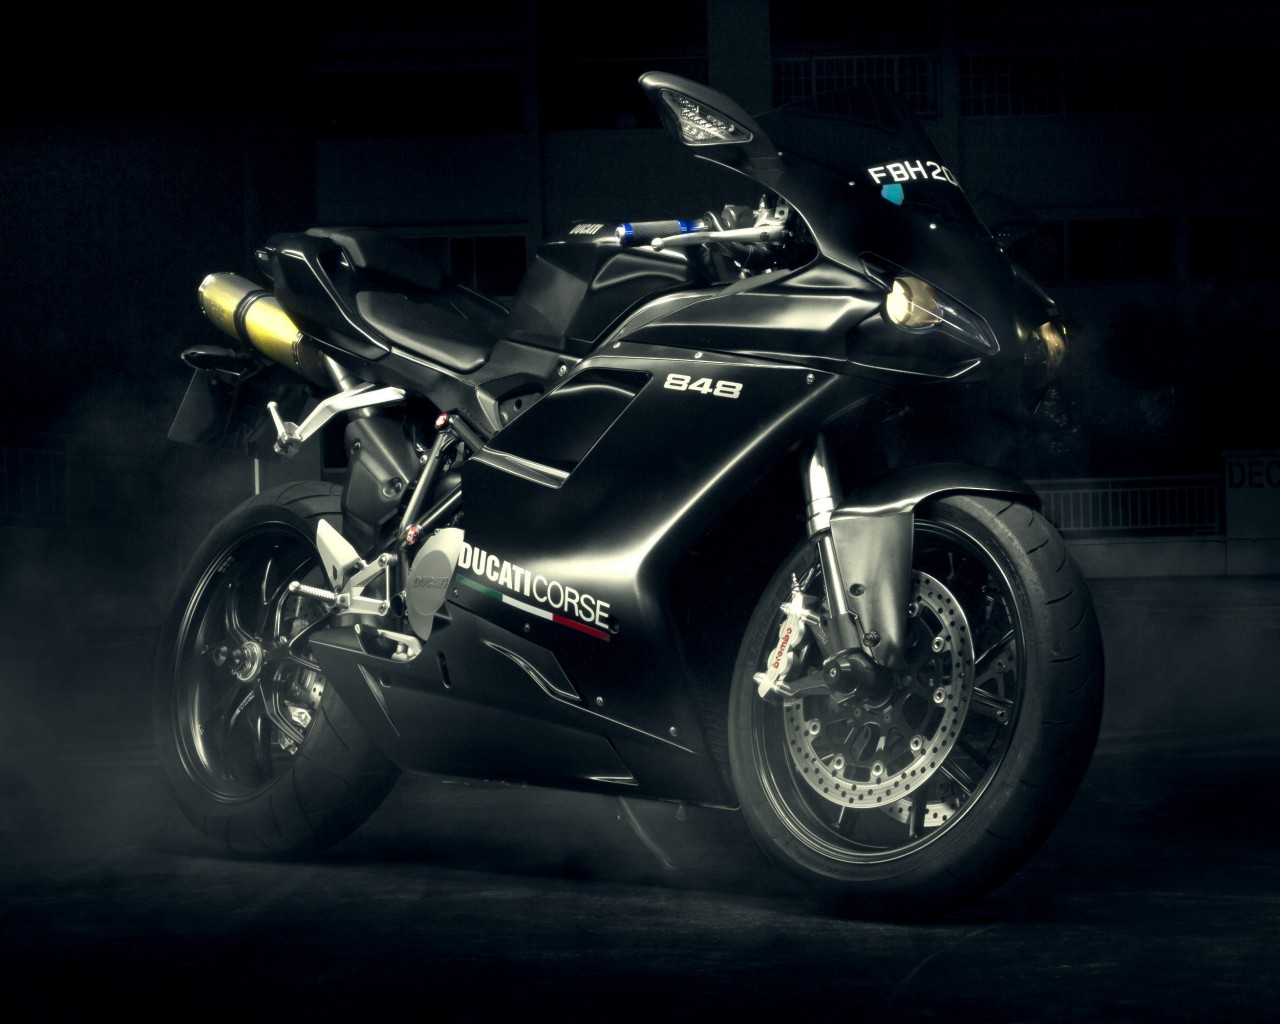 Ducati 848 Wallpaper for Desktop 1280x1024